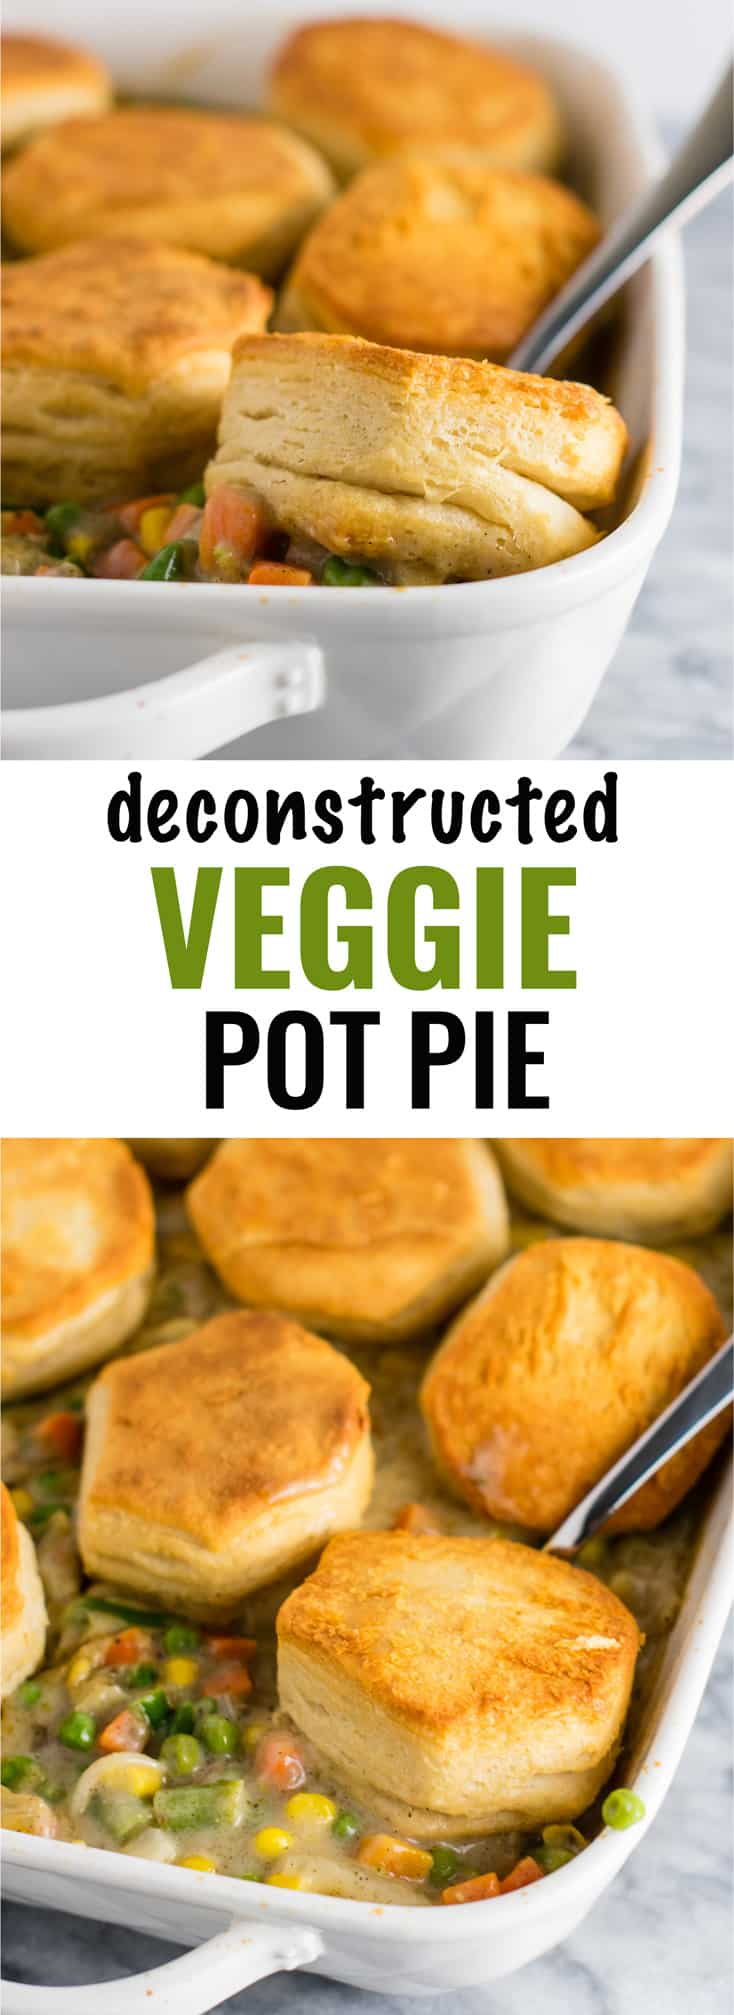 Deconstructed Veggie Pot Pie Recipe with flaky biscuits on top. A delicious twist on a classic recipe that is so simple to make. Easy delicious meatless dinner! #veggiepotpie #vegetarian #meatless #dinner #healthydinner